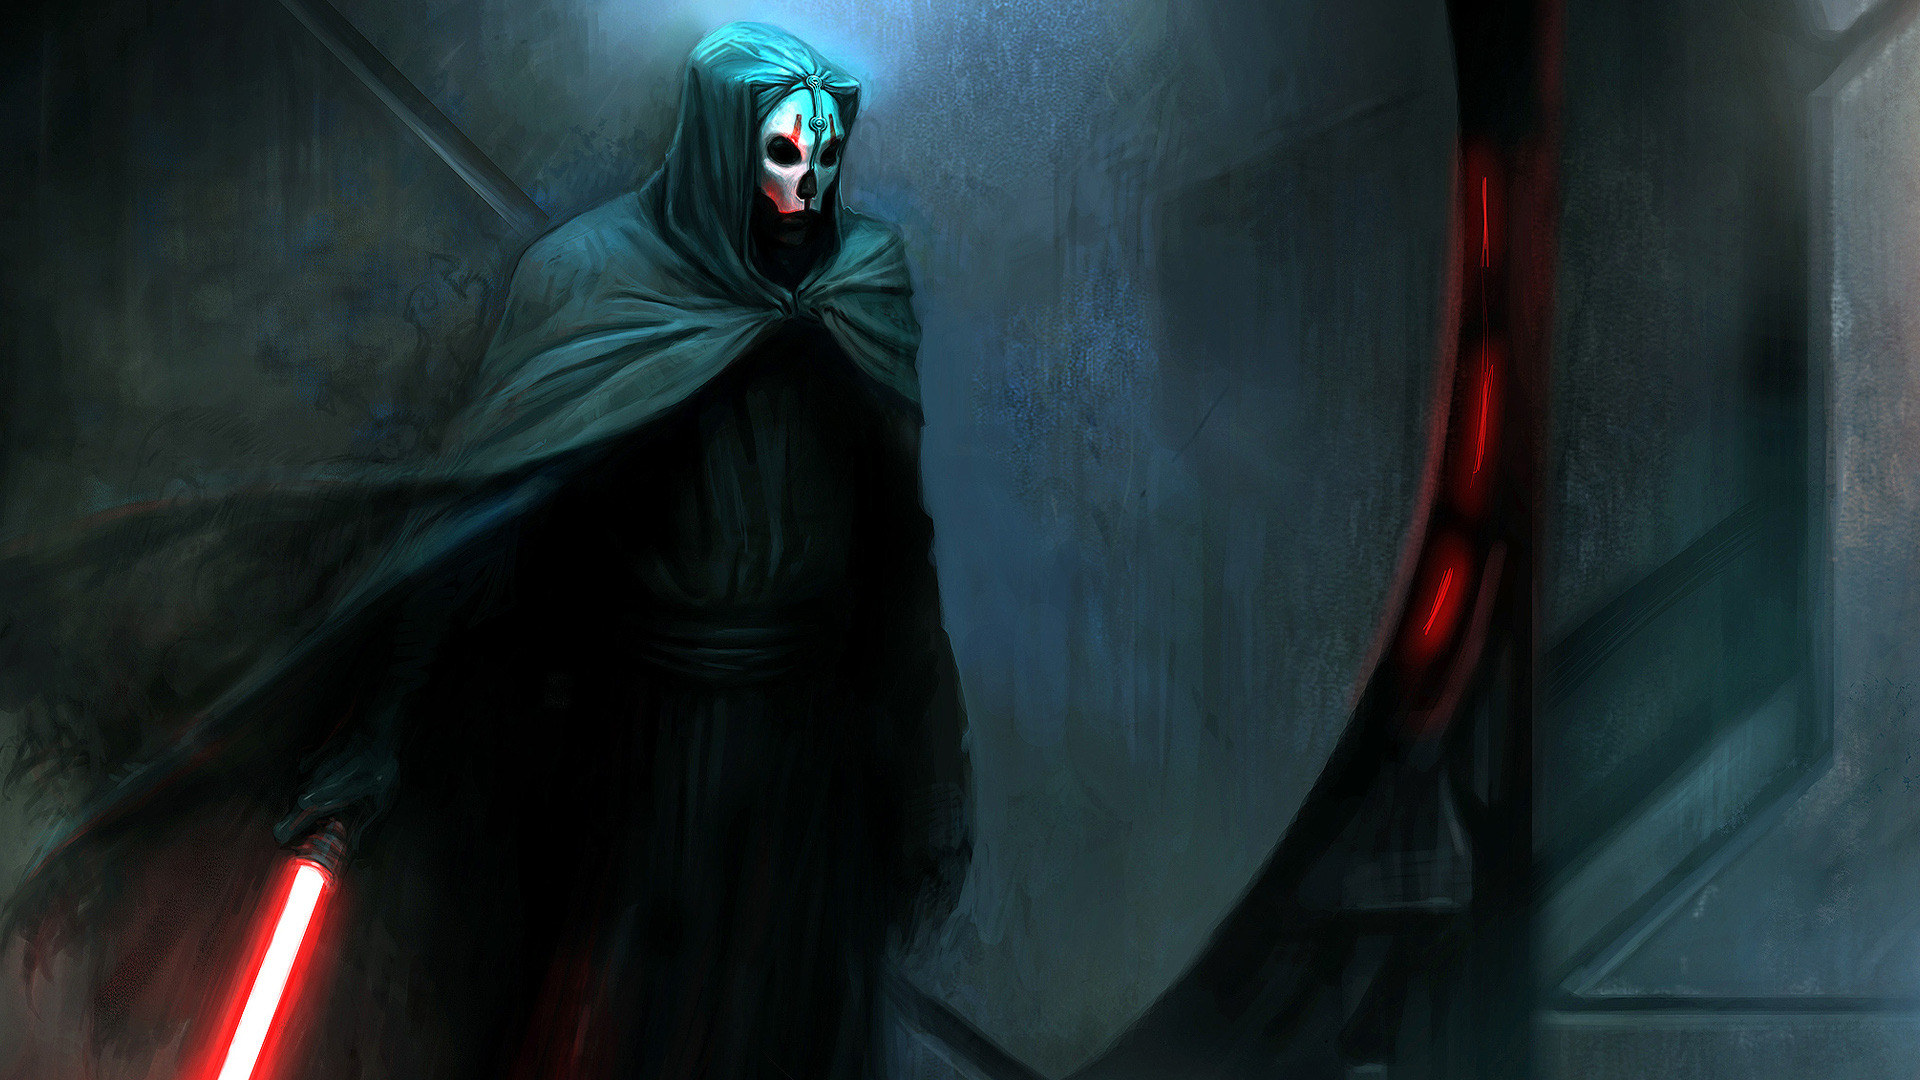 Knight   Star Wars   Knights of the Old Republic wallpaper 5852 1920x1080